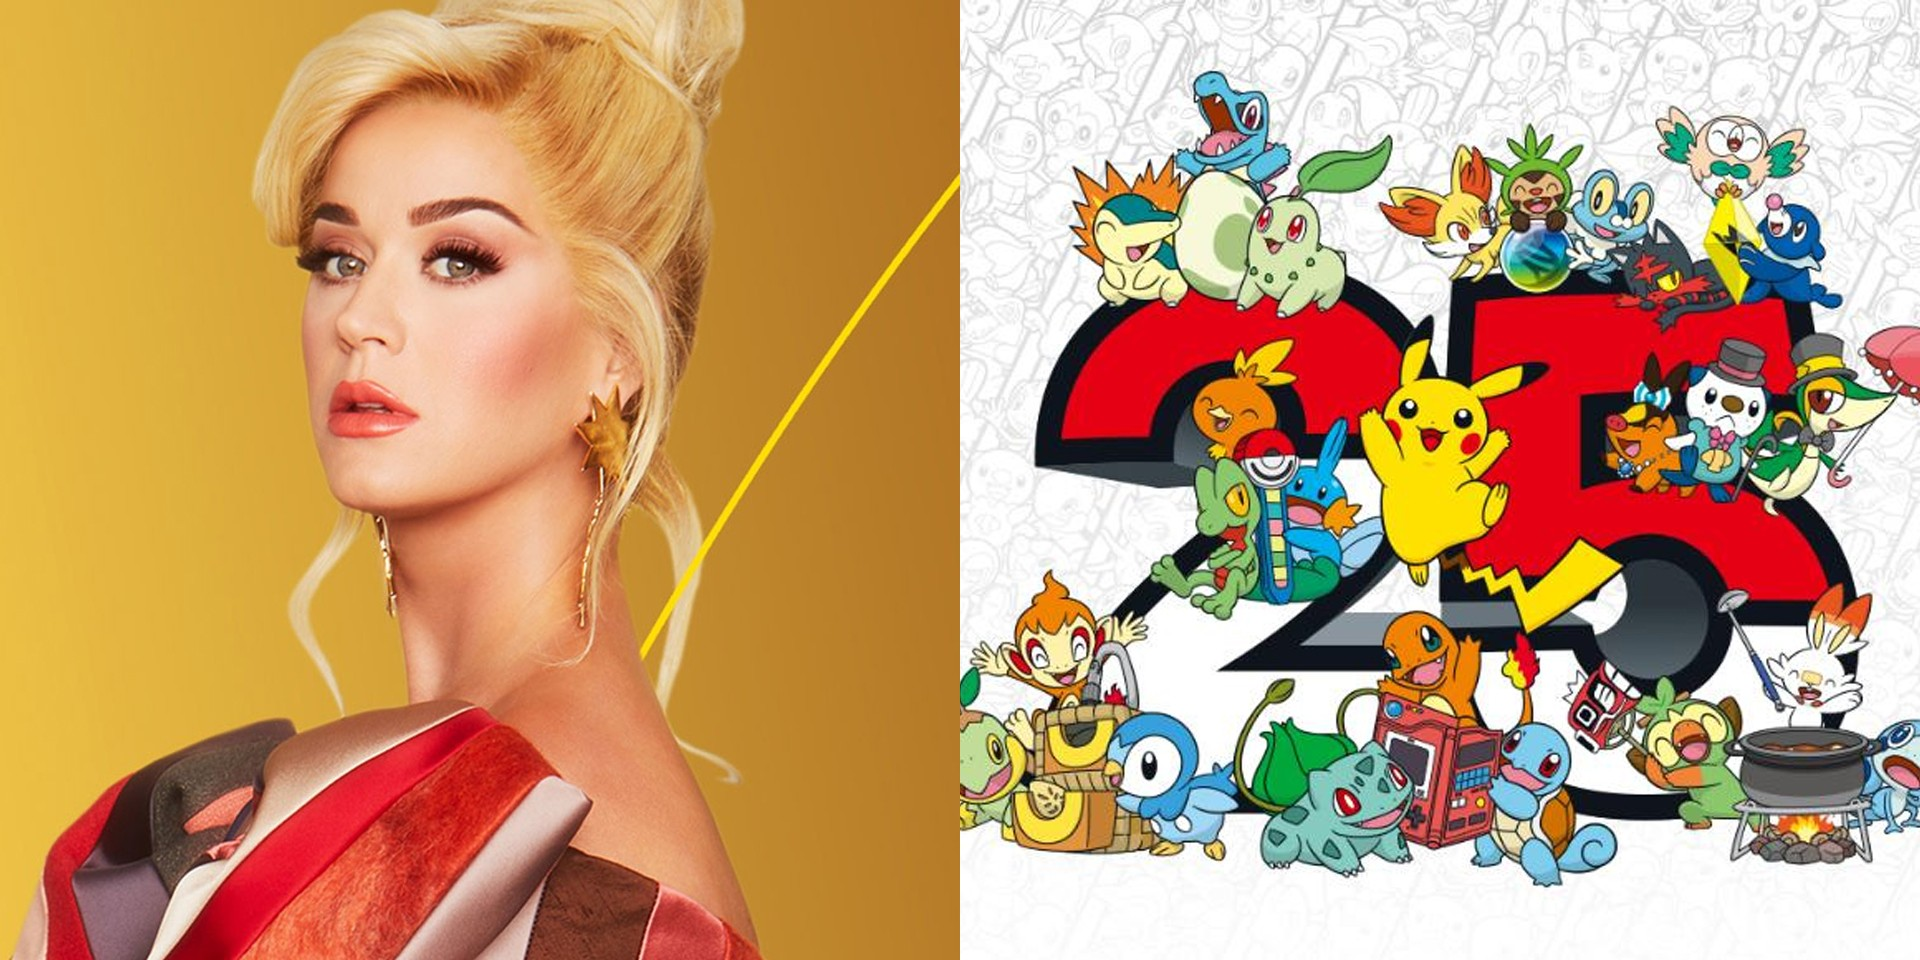 Pokémon to celebrate its 25th anniversary with global music event P25 Music featuring Katy Perry, new games, exclusive merch, and more